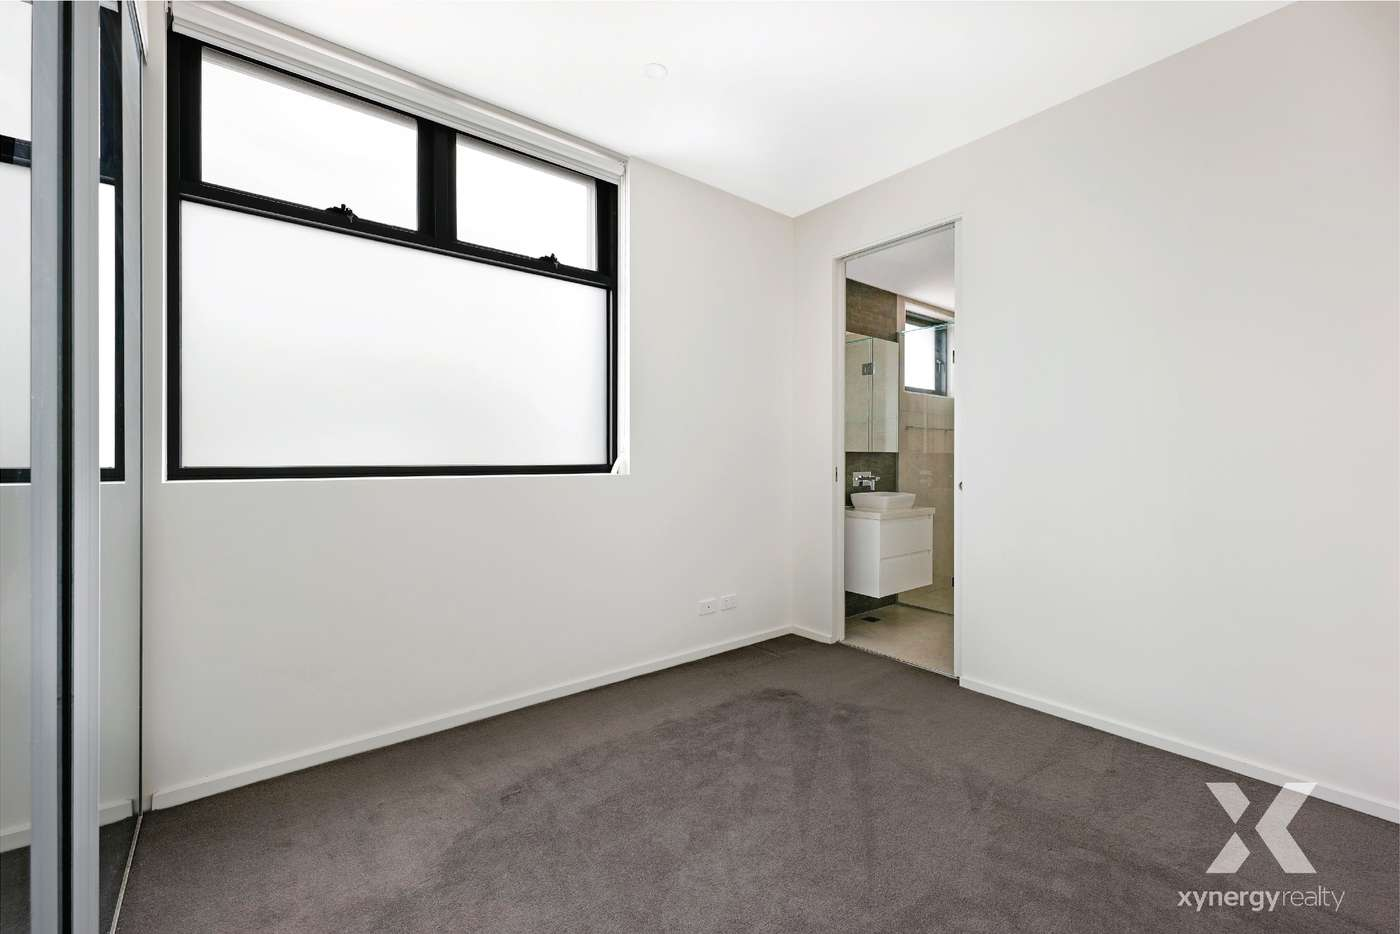 Seventh view of Homely apartment listing, 301/2 Duckett Street, Brunswick VIC 3056